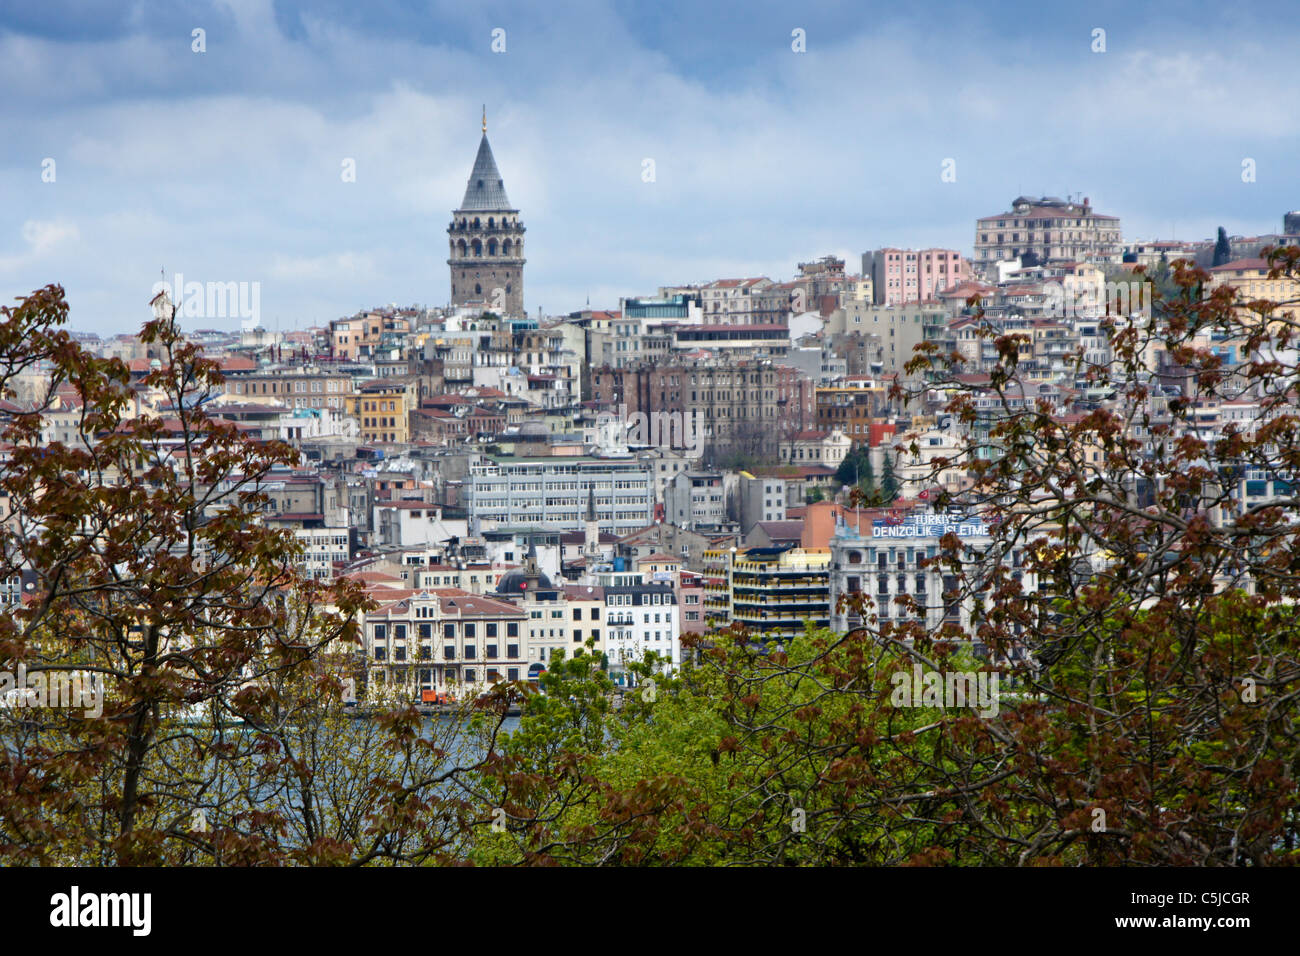 Galata Tower and Beyoglu District across the Golden Horn, Istanbul, Turkey - Stock Image